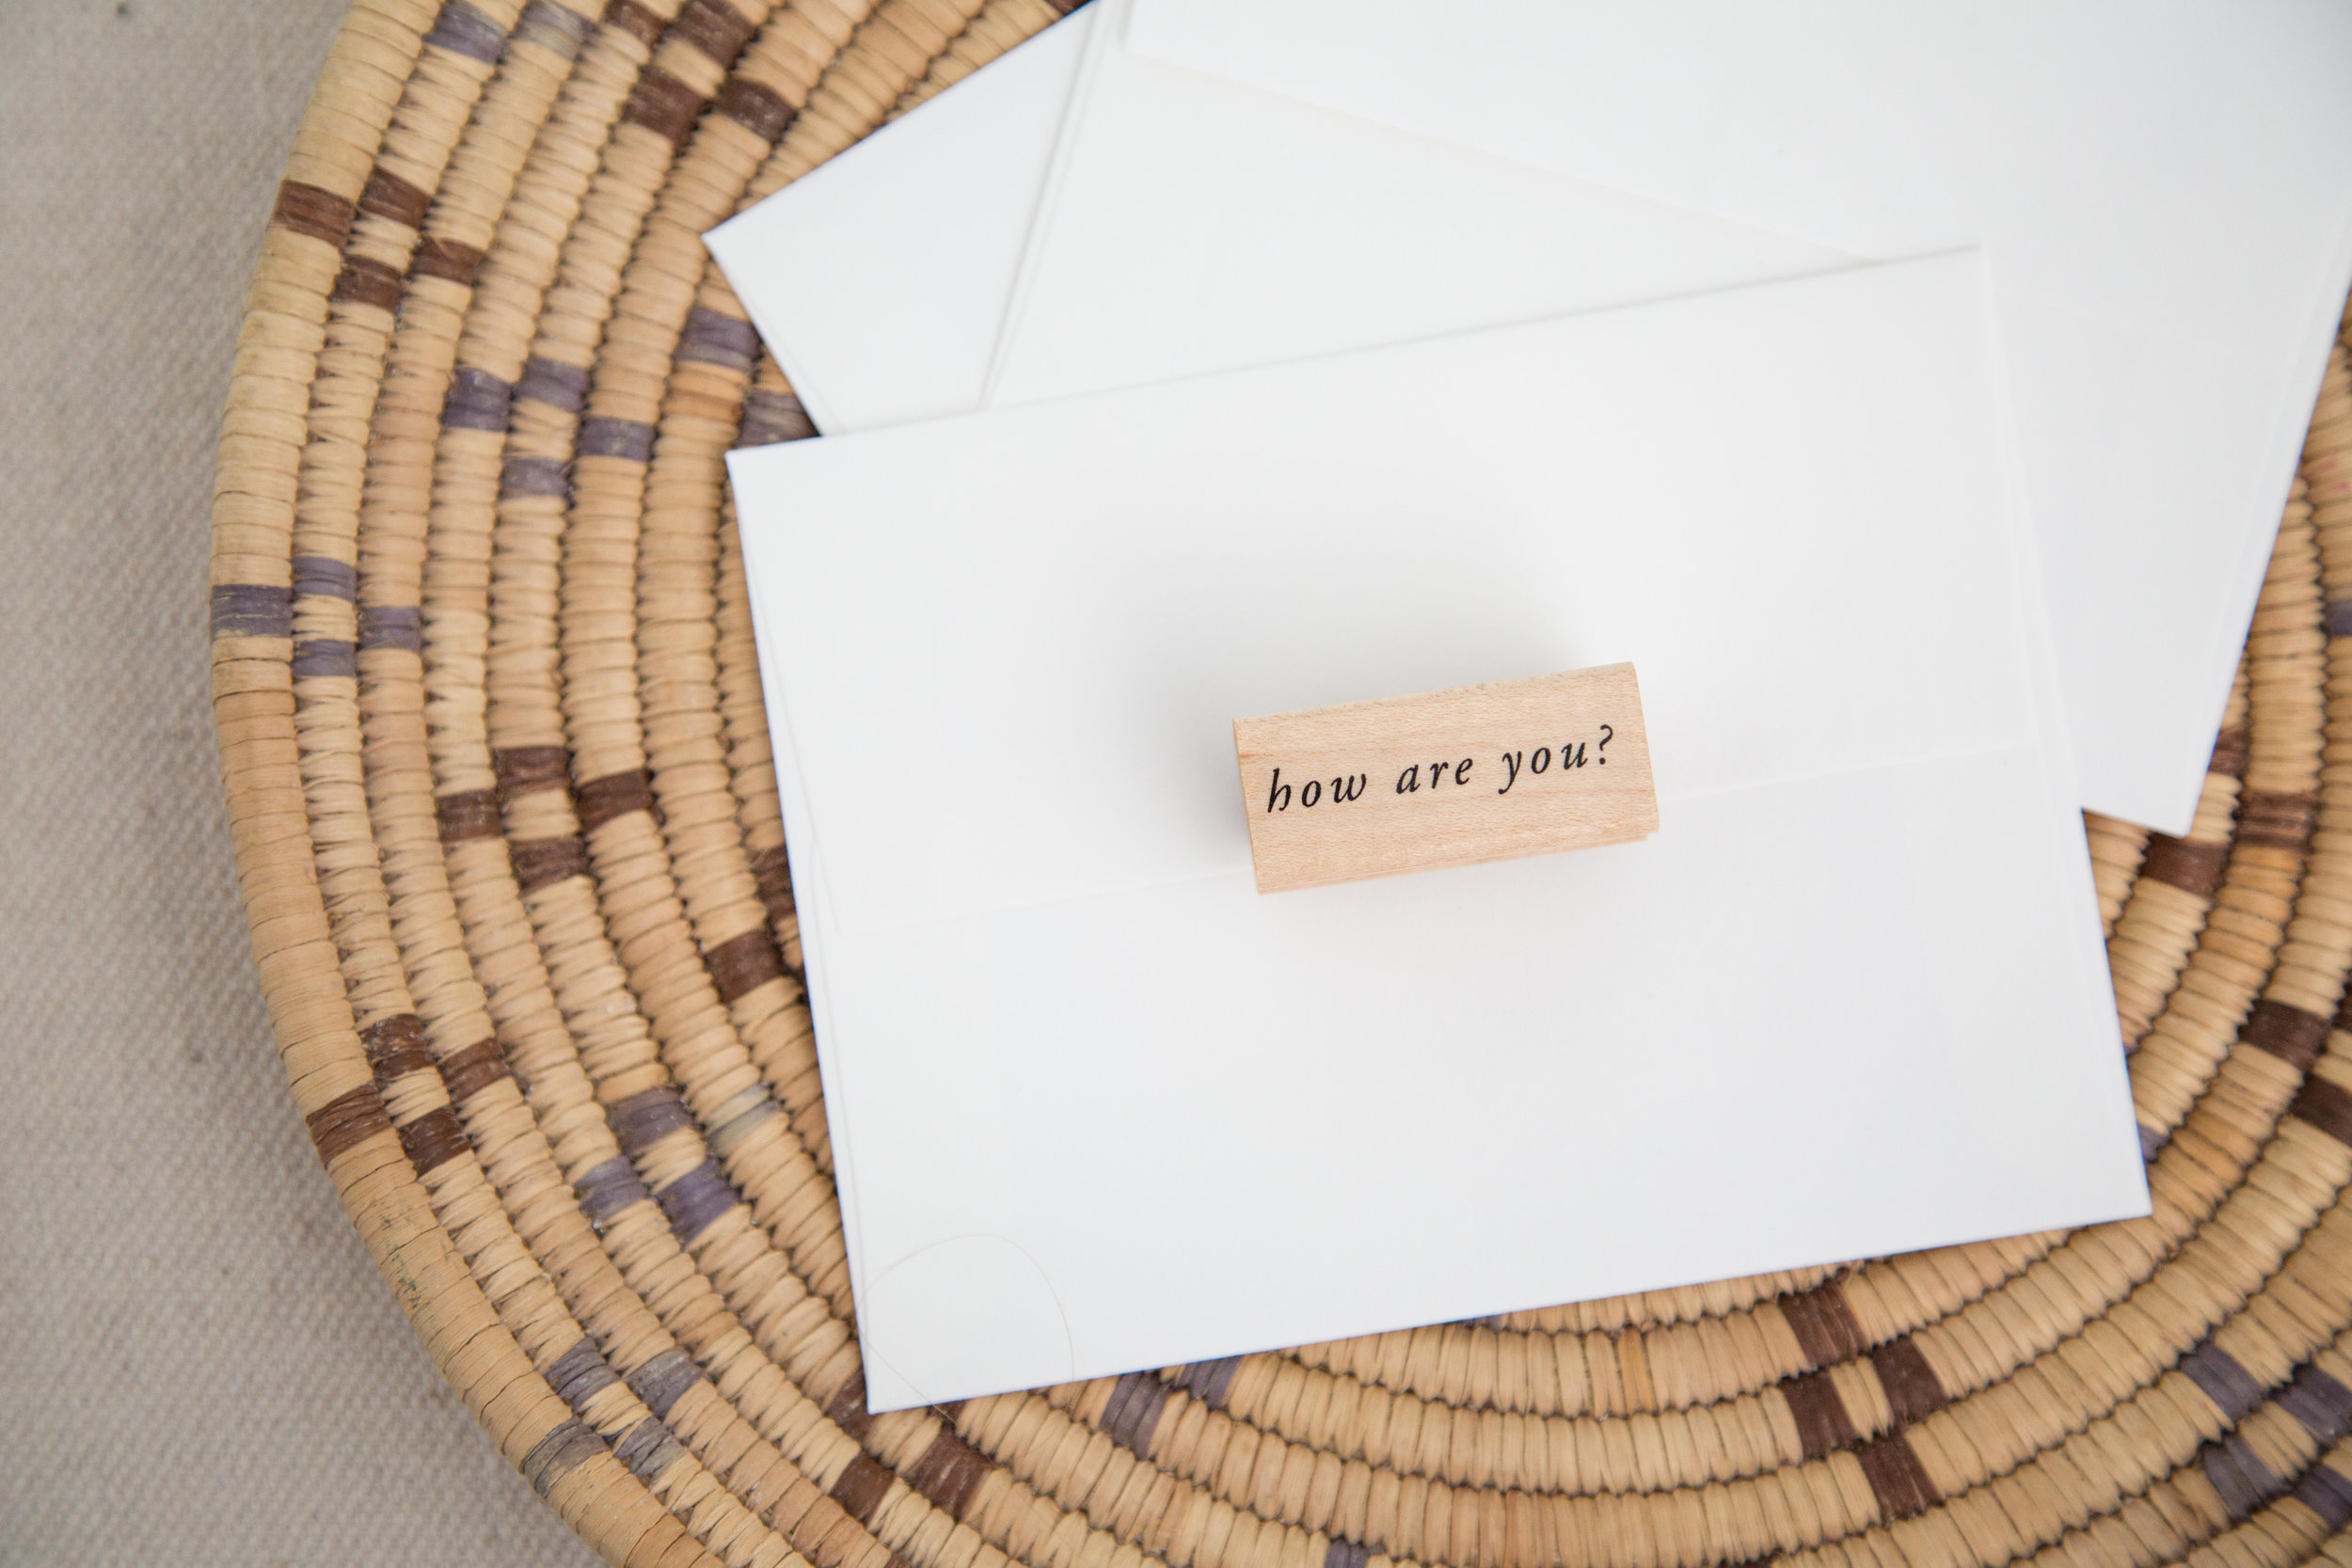 How are you? | Rubber stamp for connecting intentionally and meaningfully | Of Note Stationers